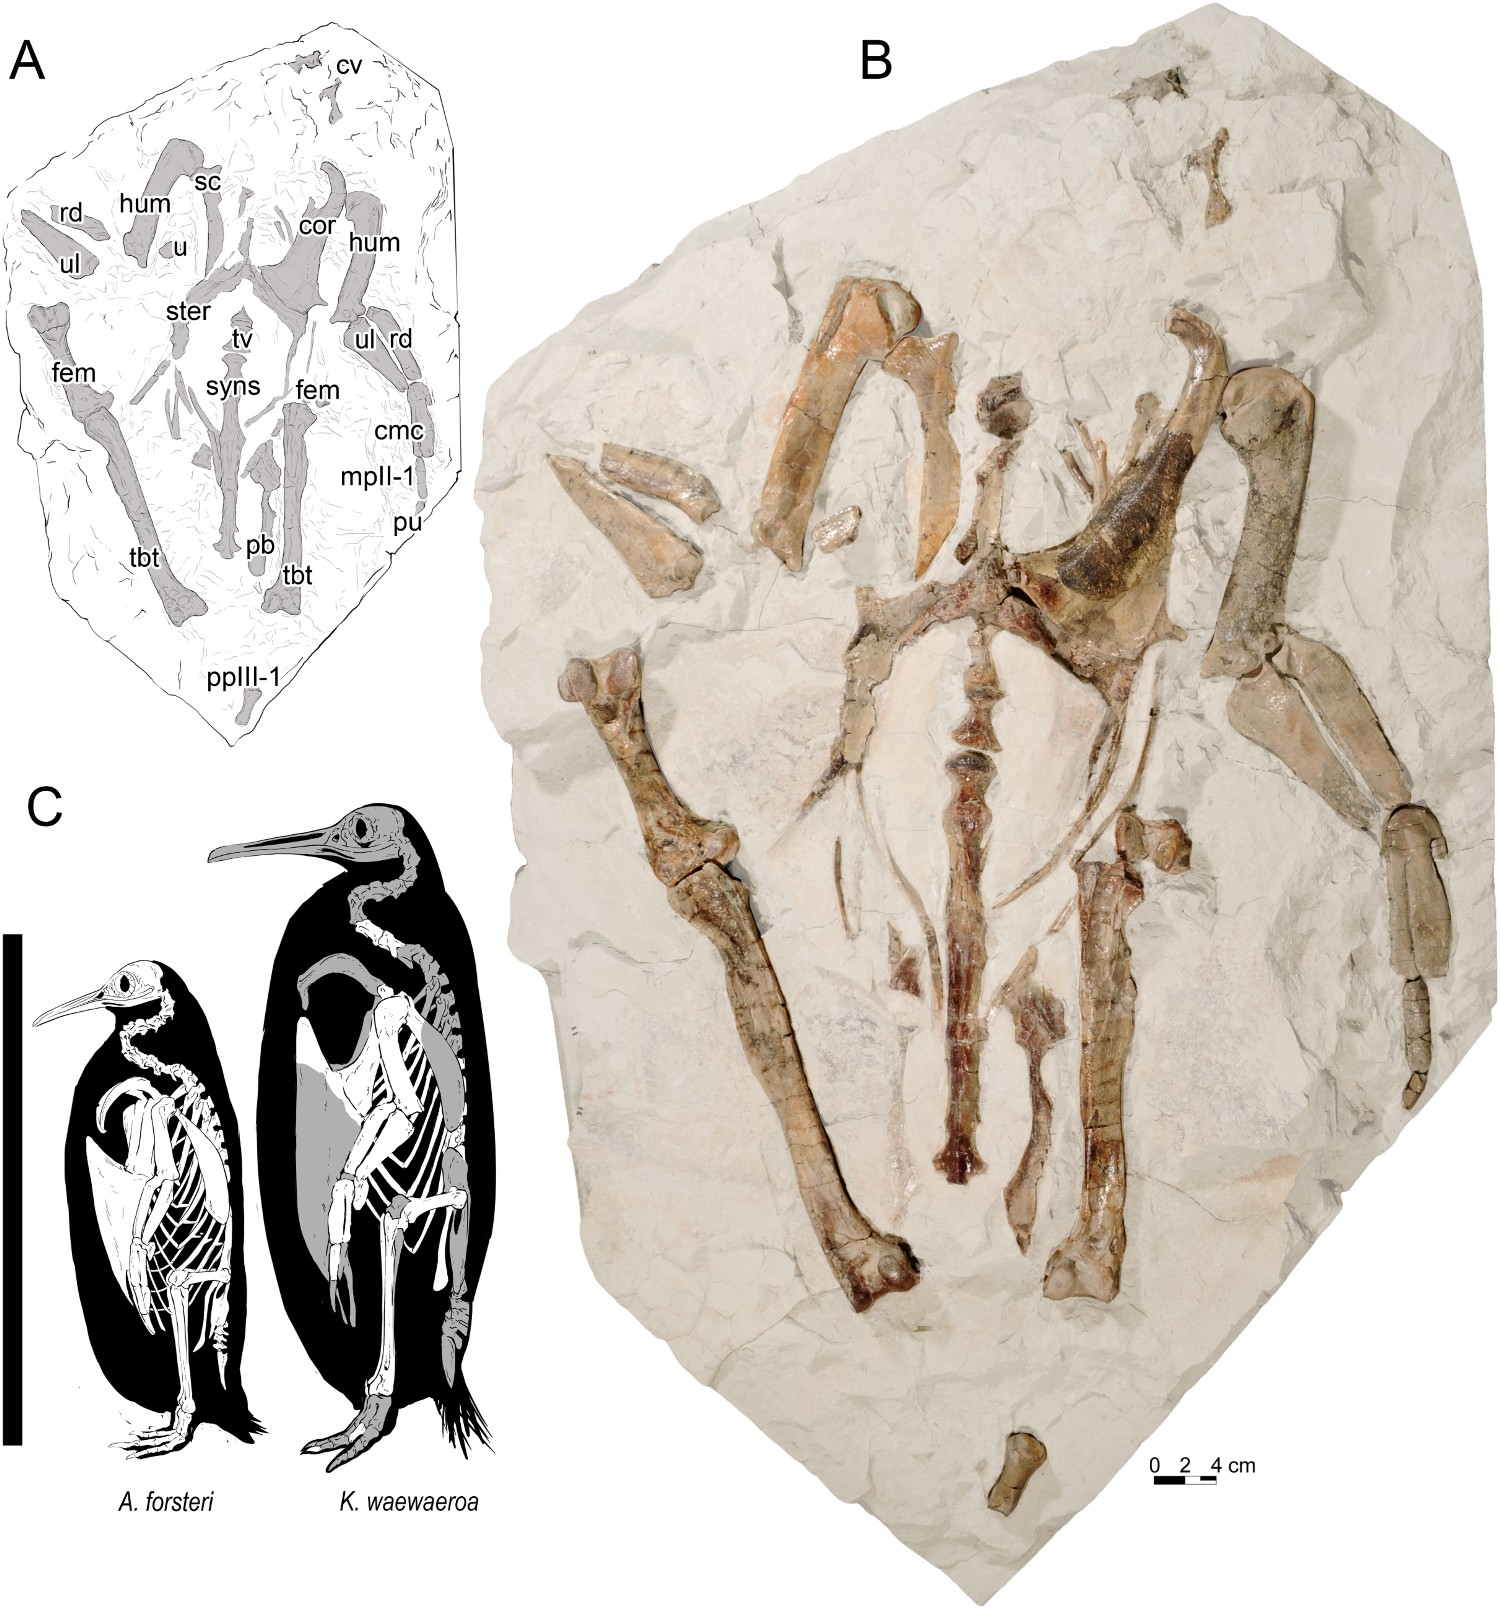 Fossil next to line drawings showing size compared to emperor penguin.